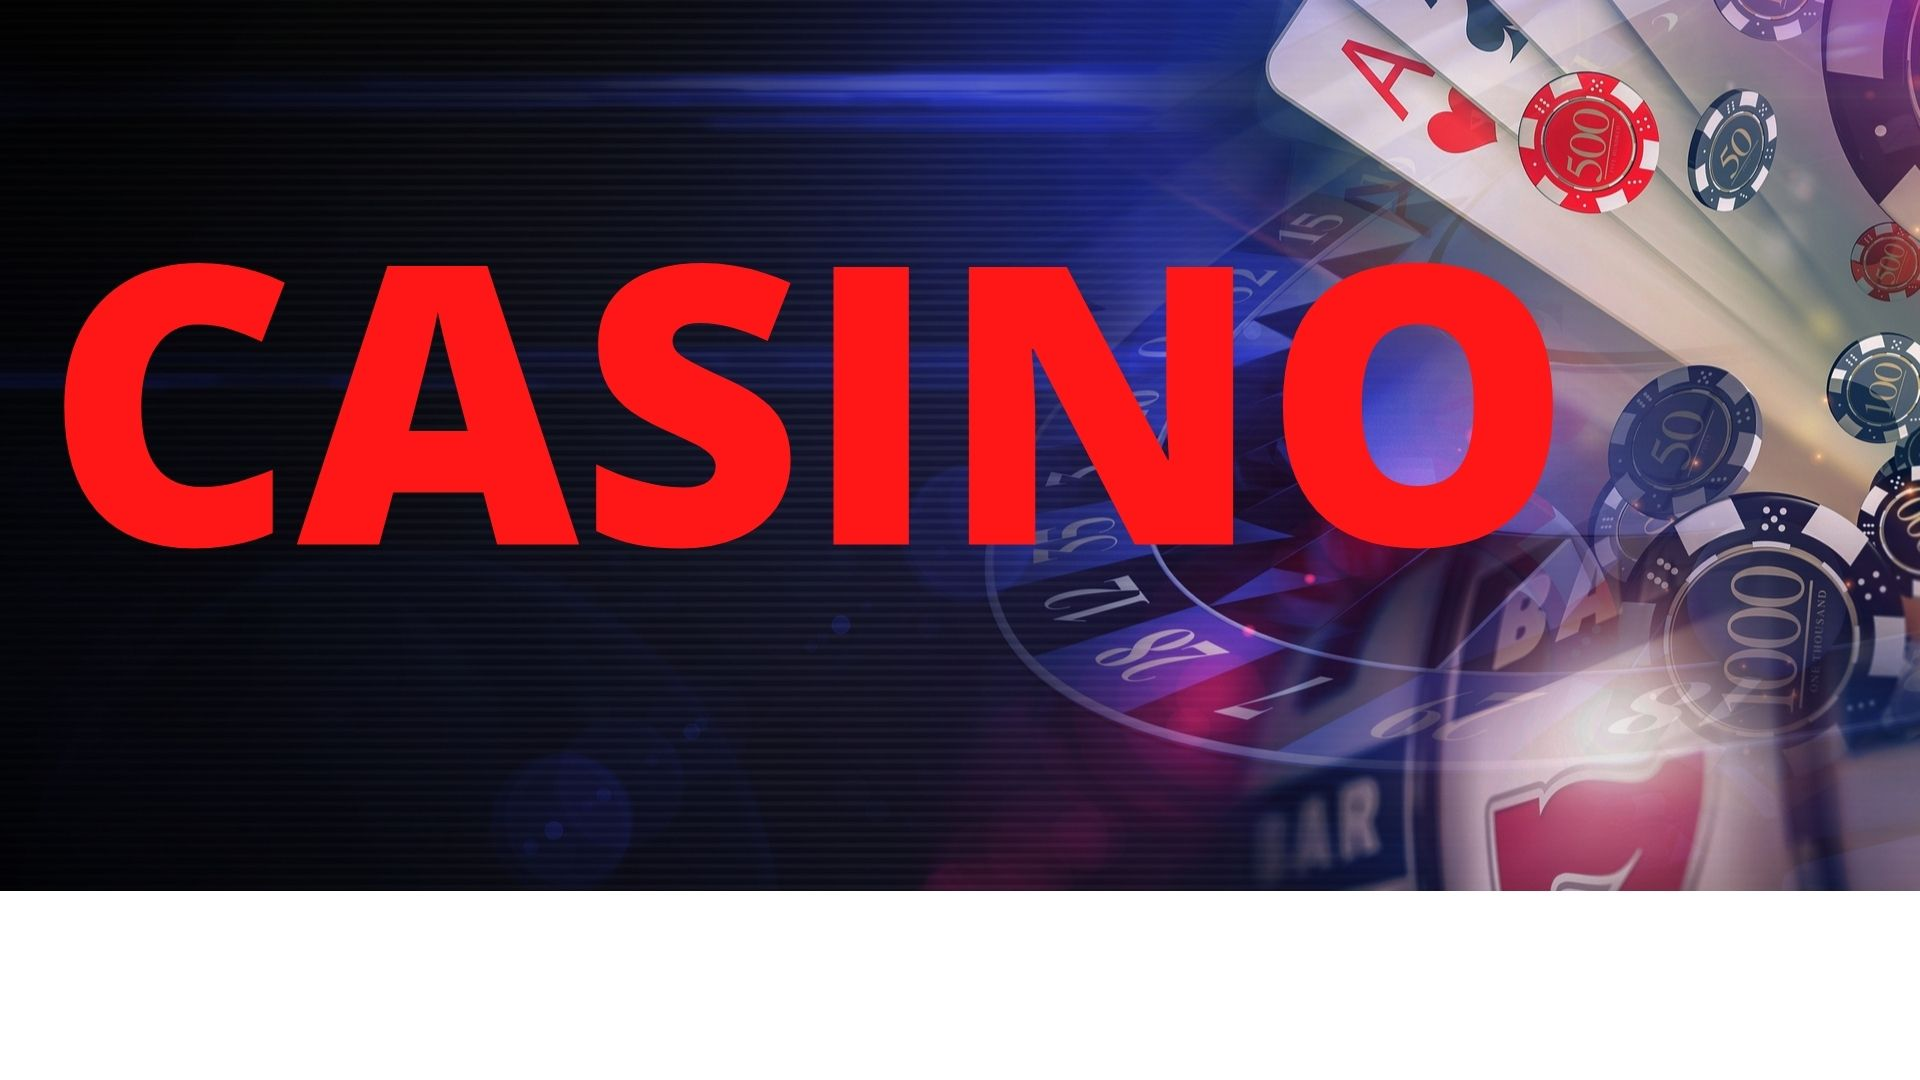 Build 700+ Permanent casino/poker/gambling On your homepage with web2.0 unique website